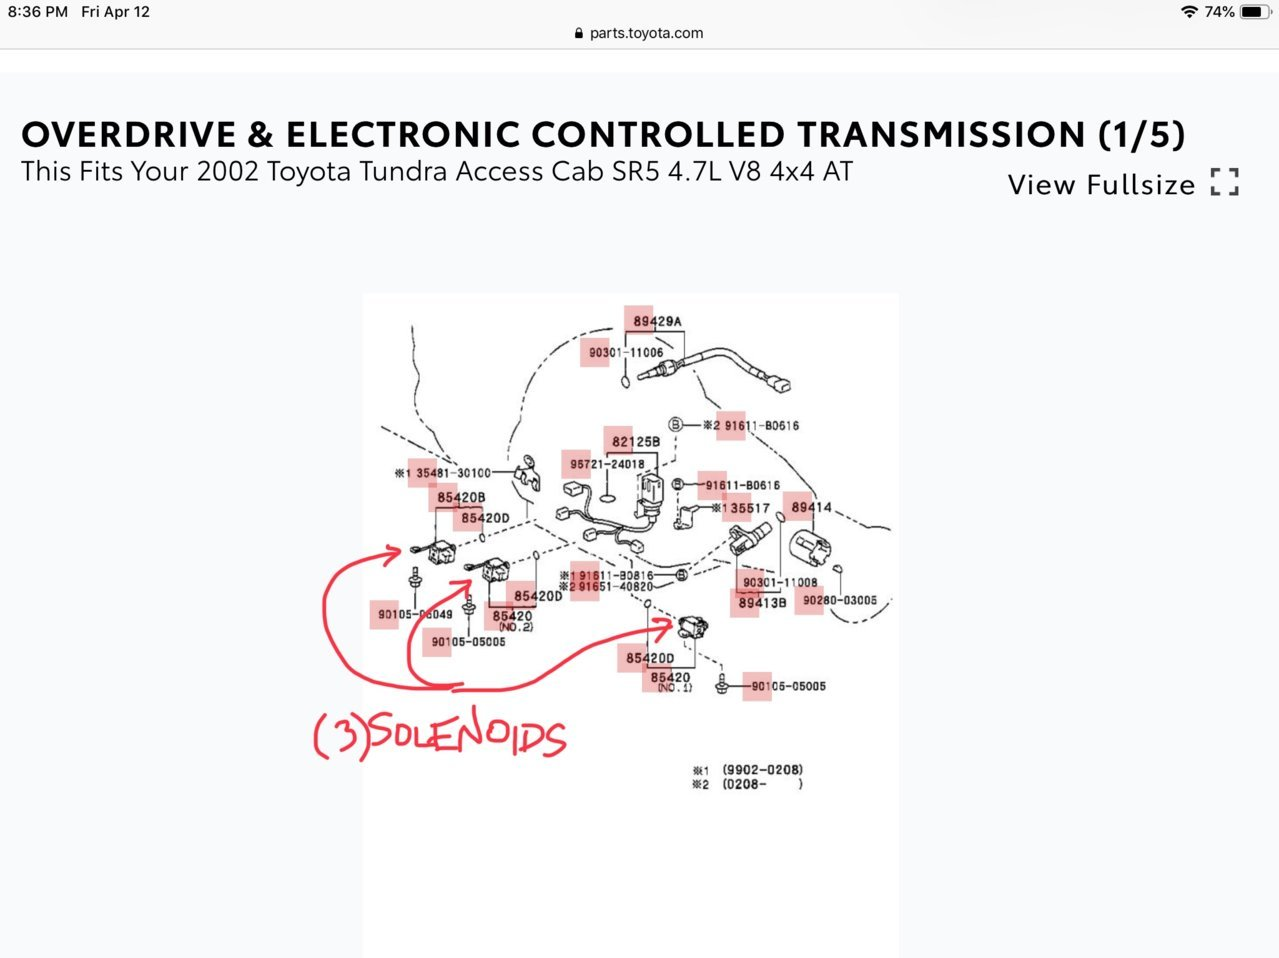 [DIAGRAM_38DE]  B97FC0D Overdrive Wiring Diagram For Toyota Tundra | Wiring Resources | 2002 Toyota Tundra Steering Column Wiring Diagram |  | Wiring Resources